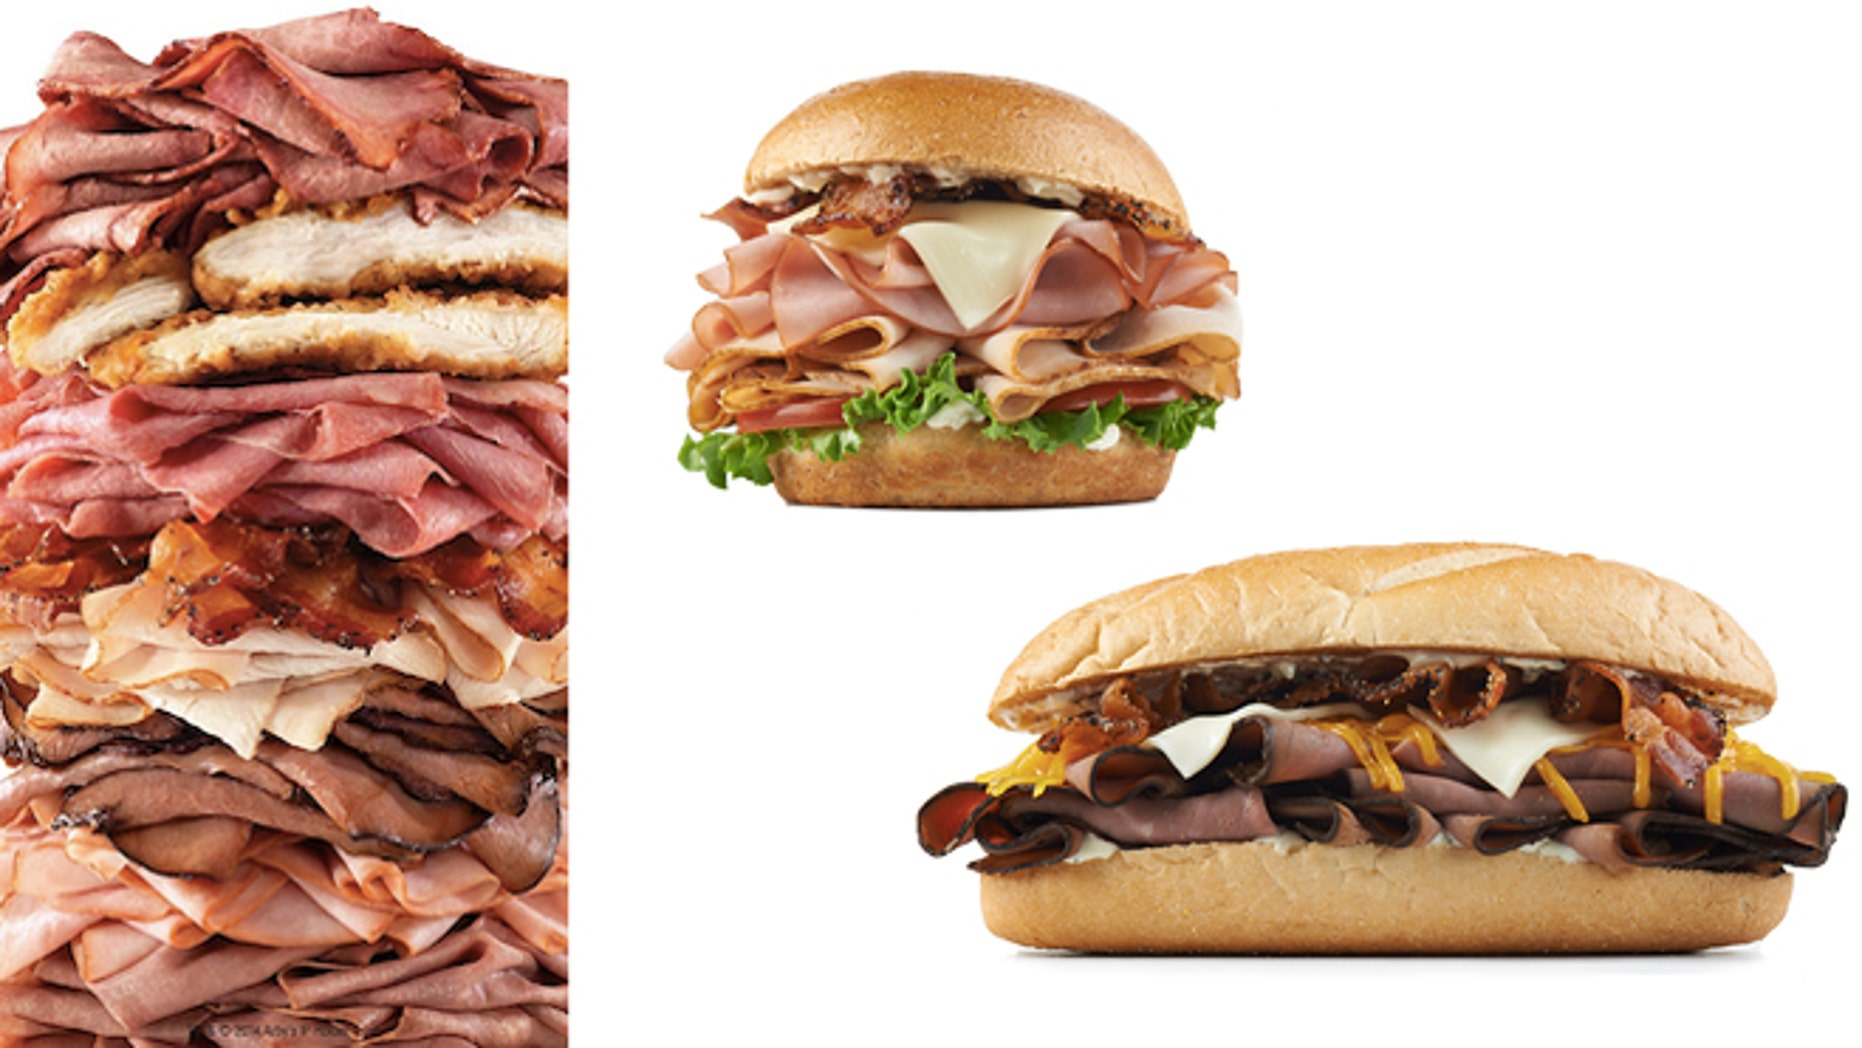 All of the meats and a few of Arby's meaty sandwich selections.